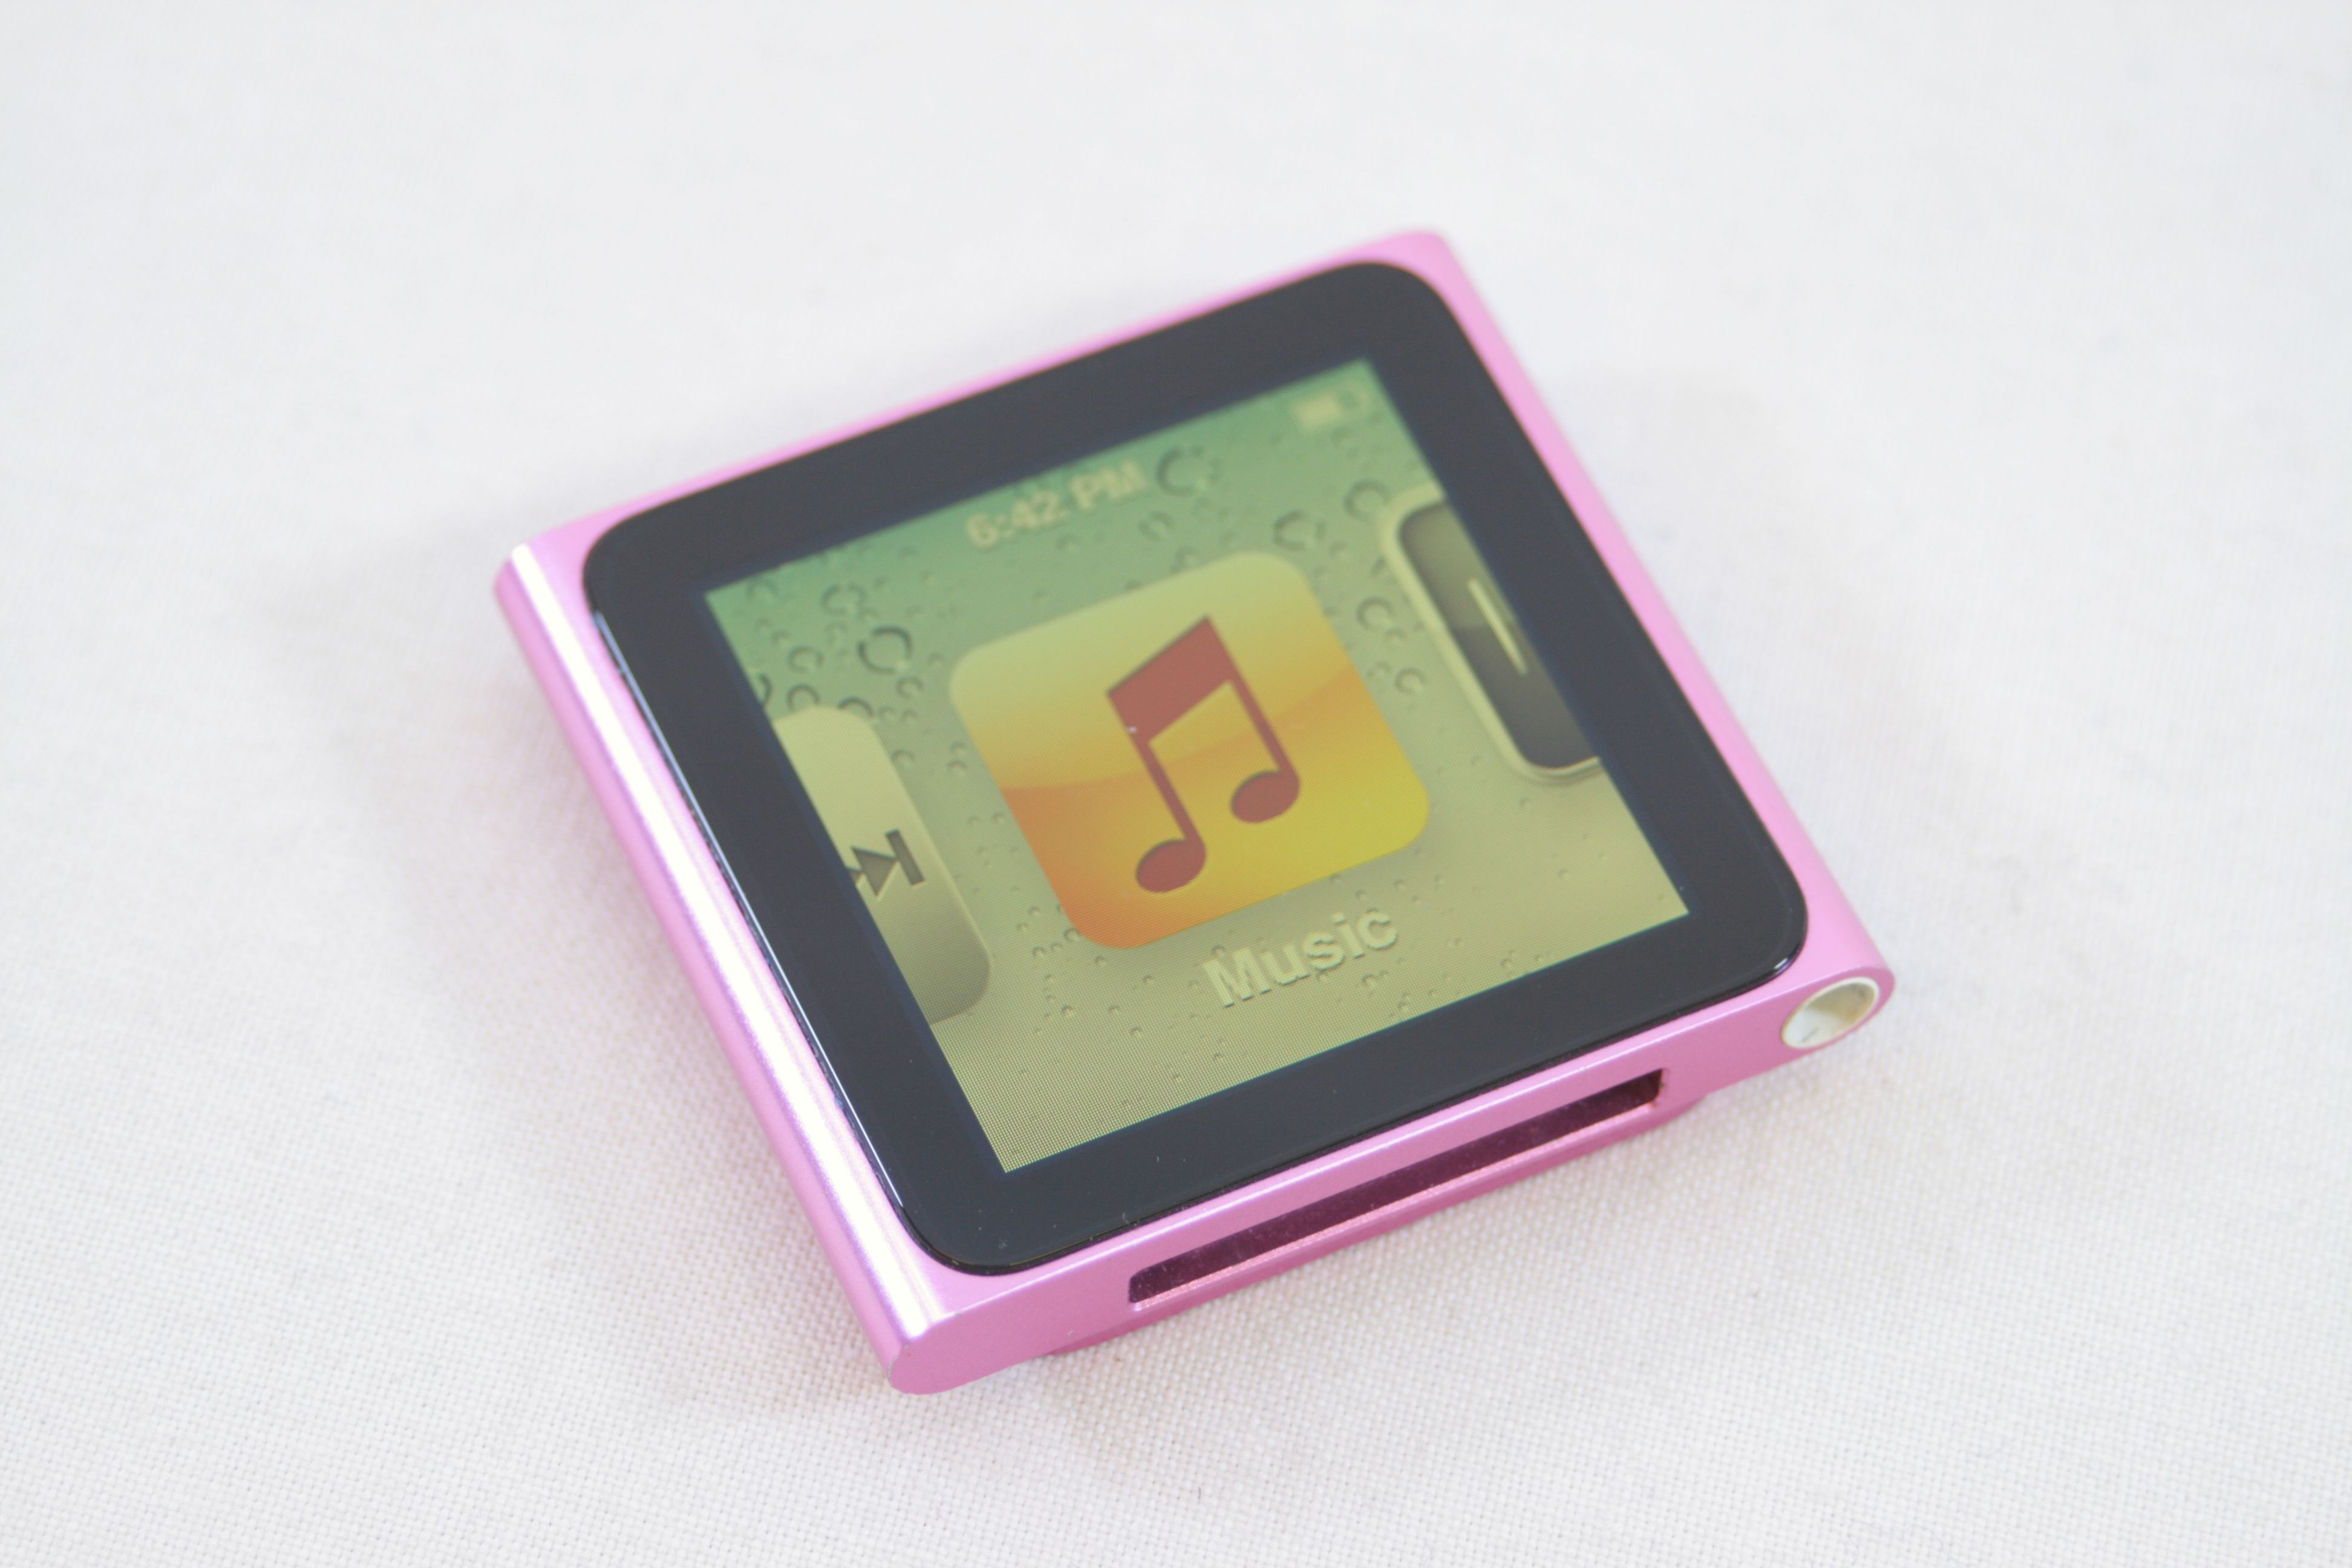 Apple iPod nano 6th Generation Pink (8GB) 1. Open Full-Size Image